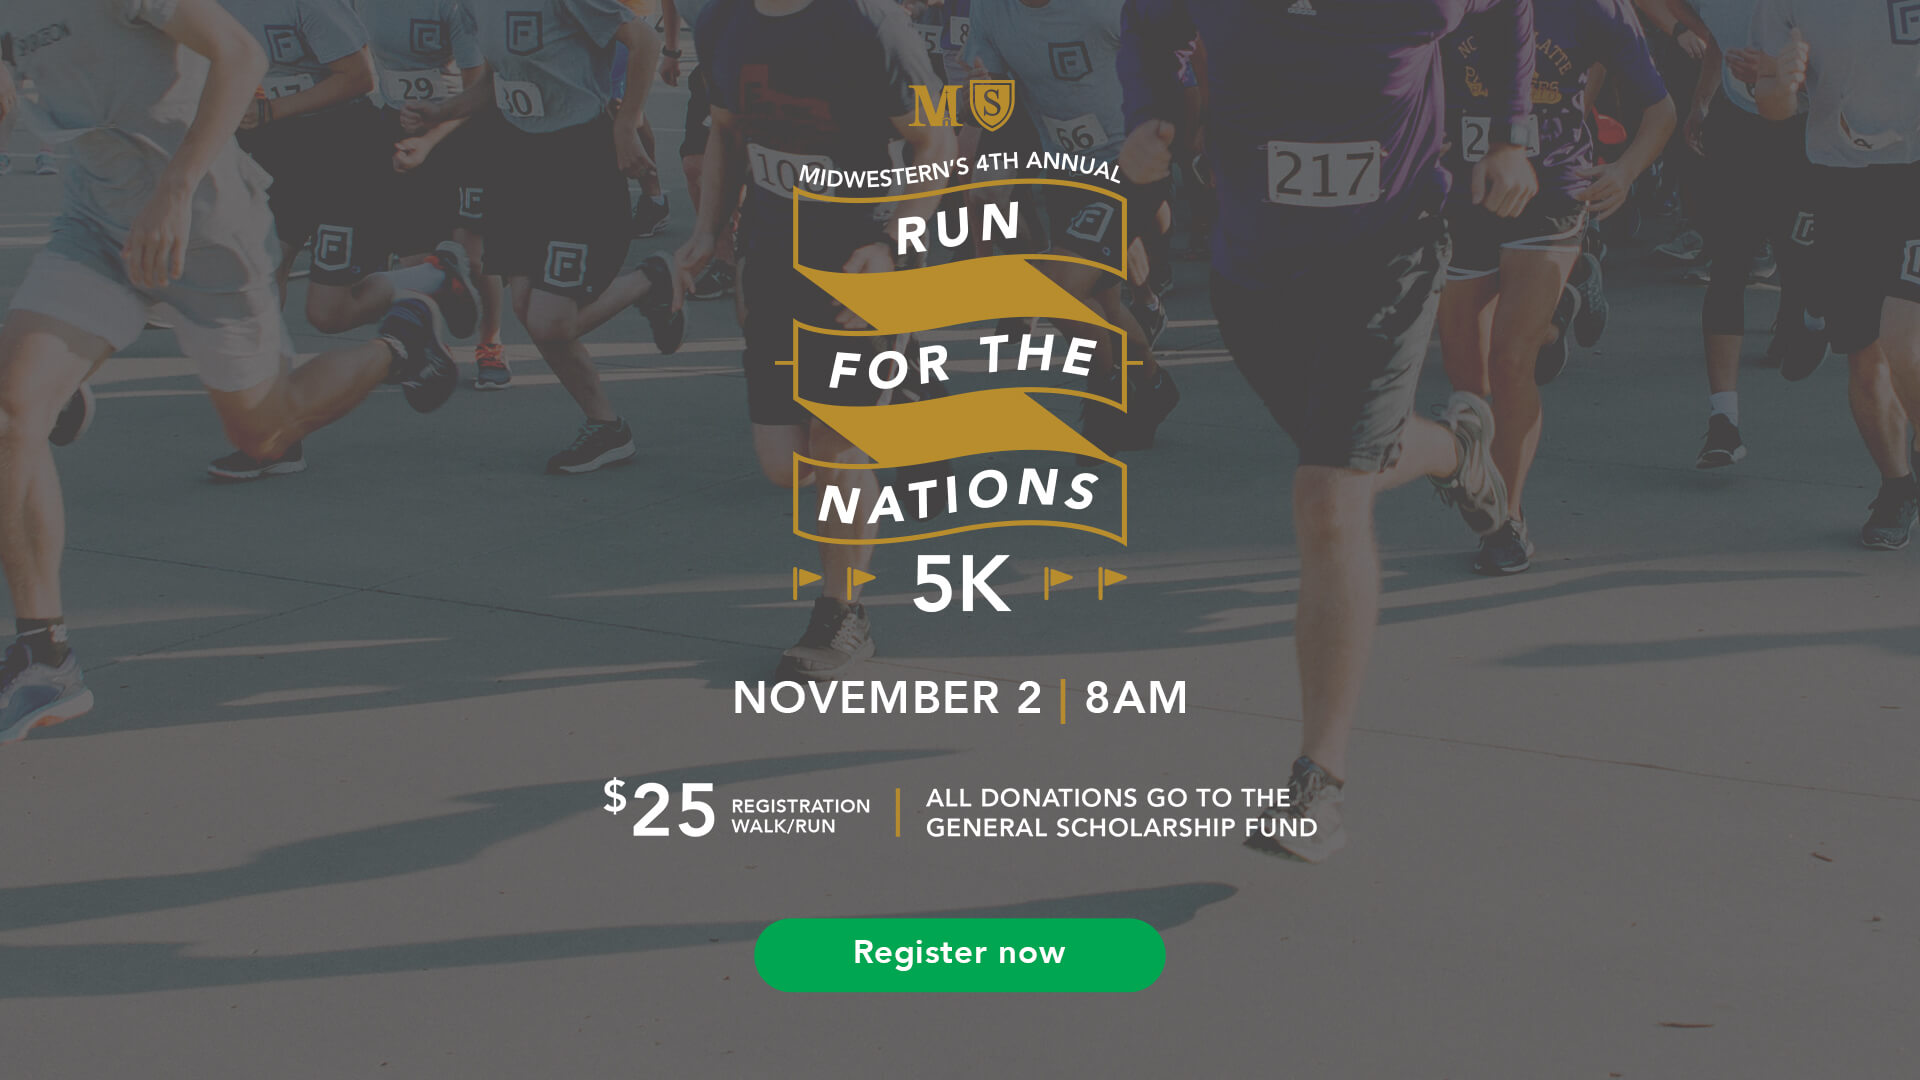 Run for the Nations Nov. 2